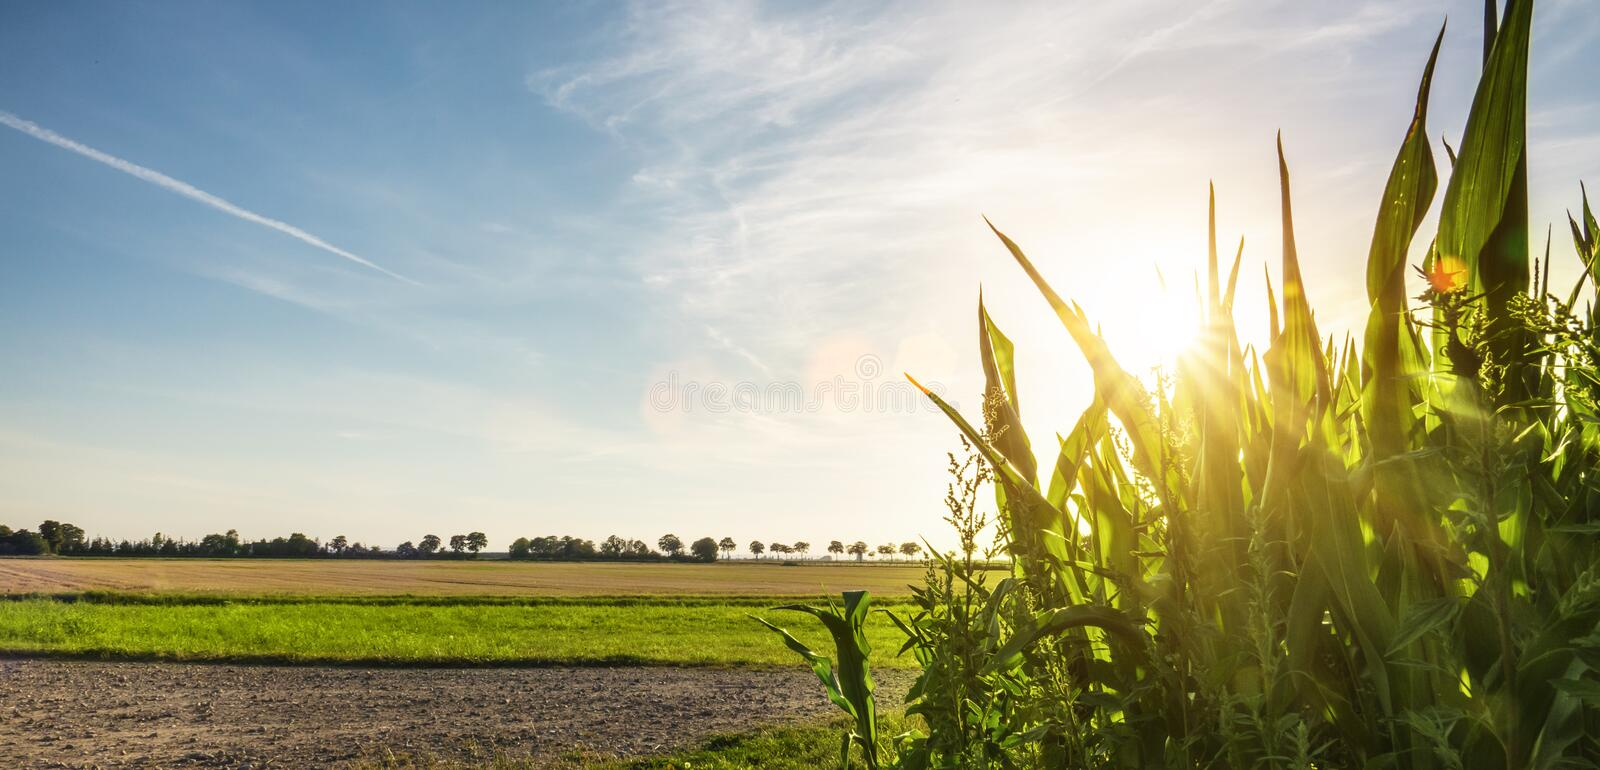 Corn field garden agriculture in countryside stock image